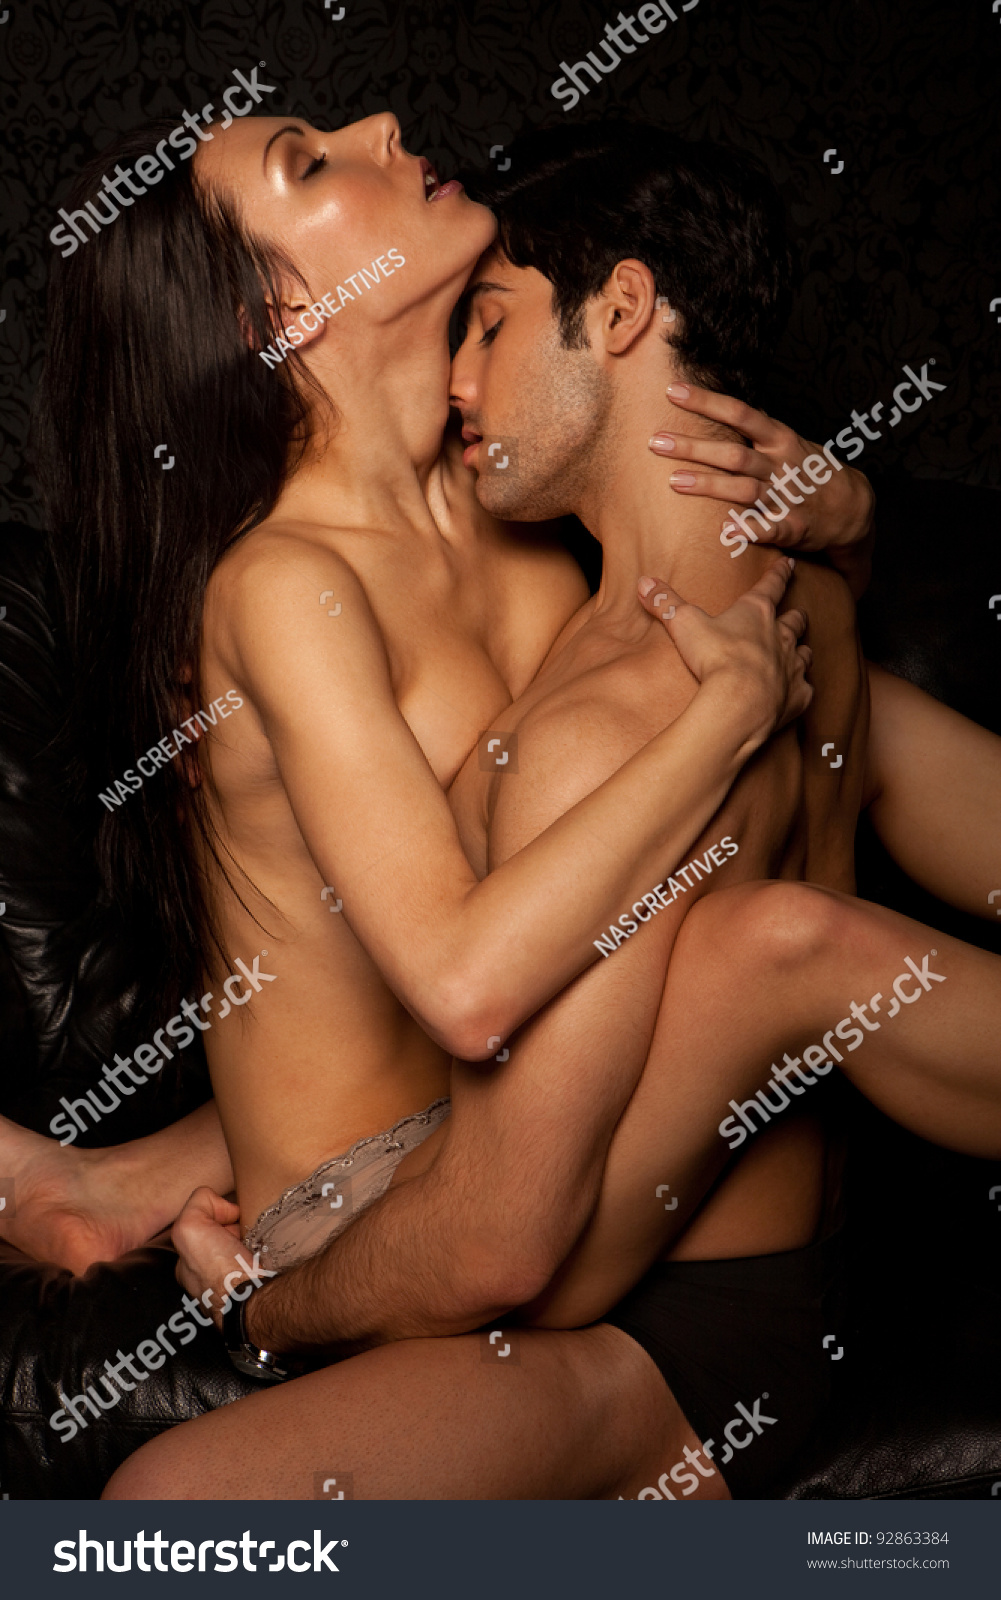 naked young couples havinghardcore sex